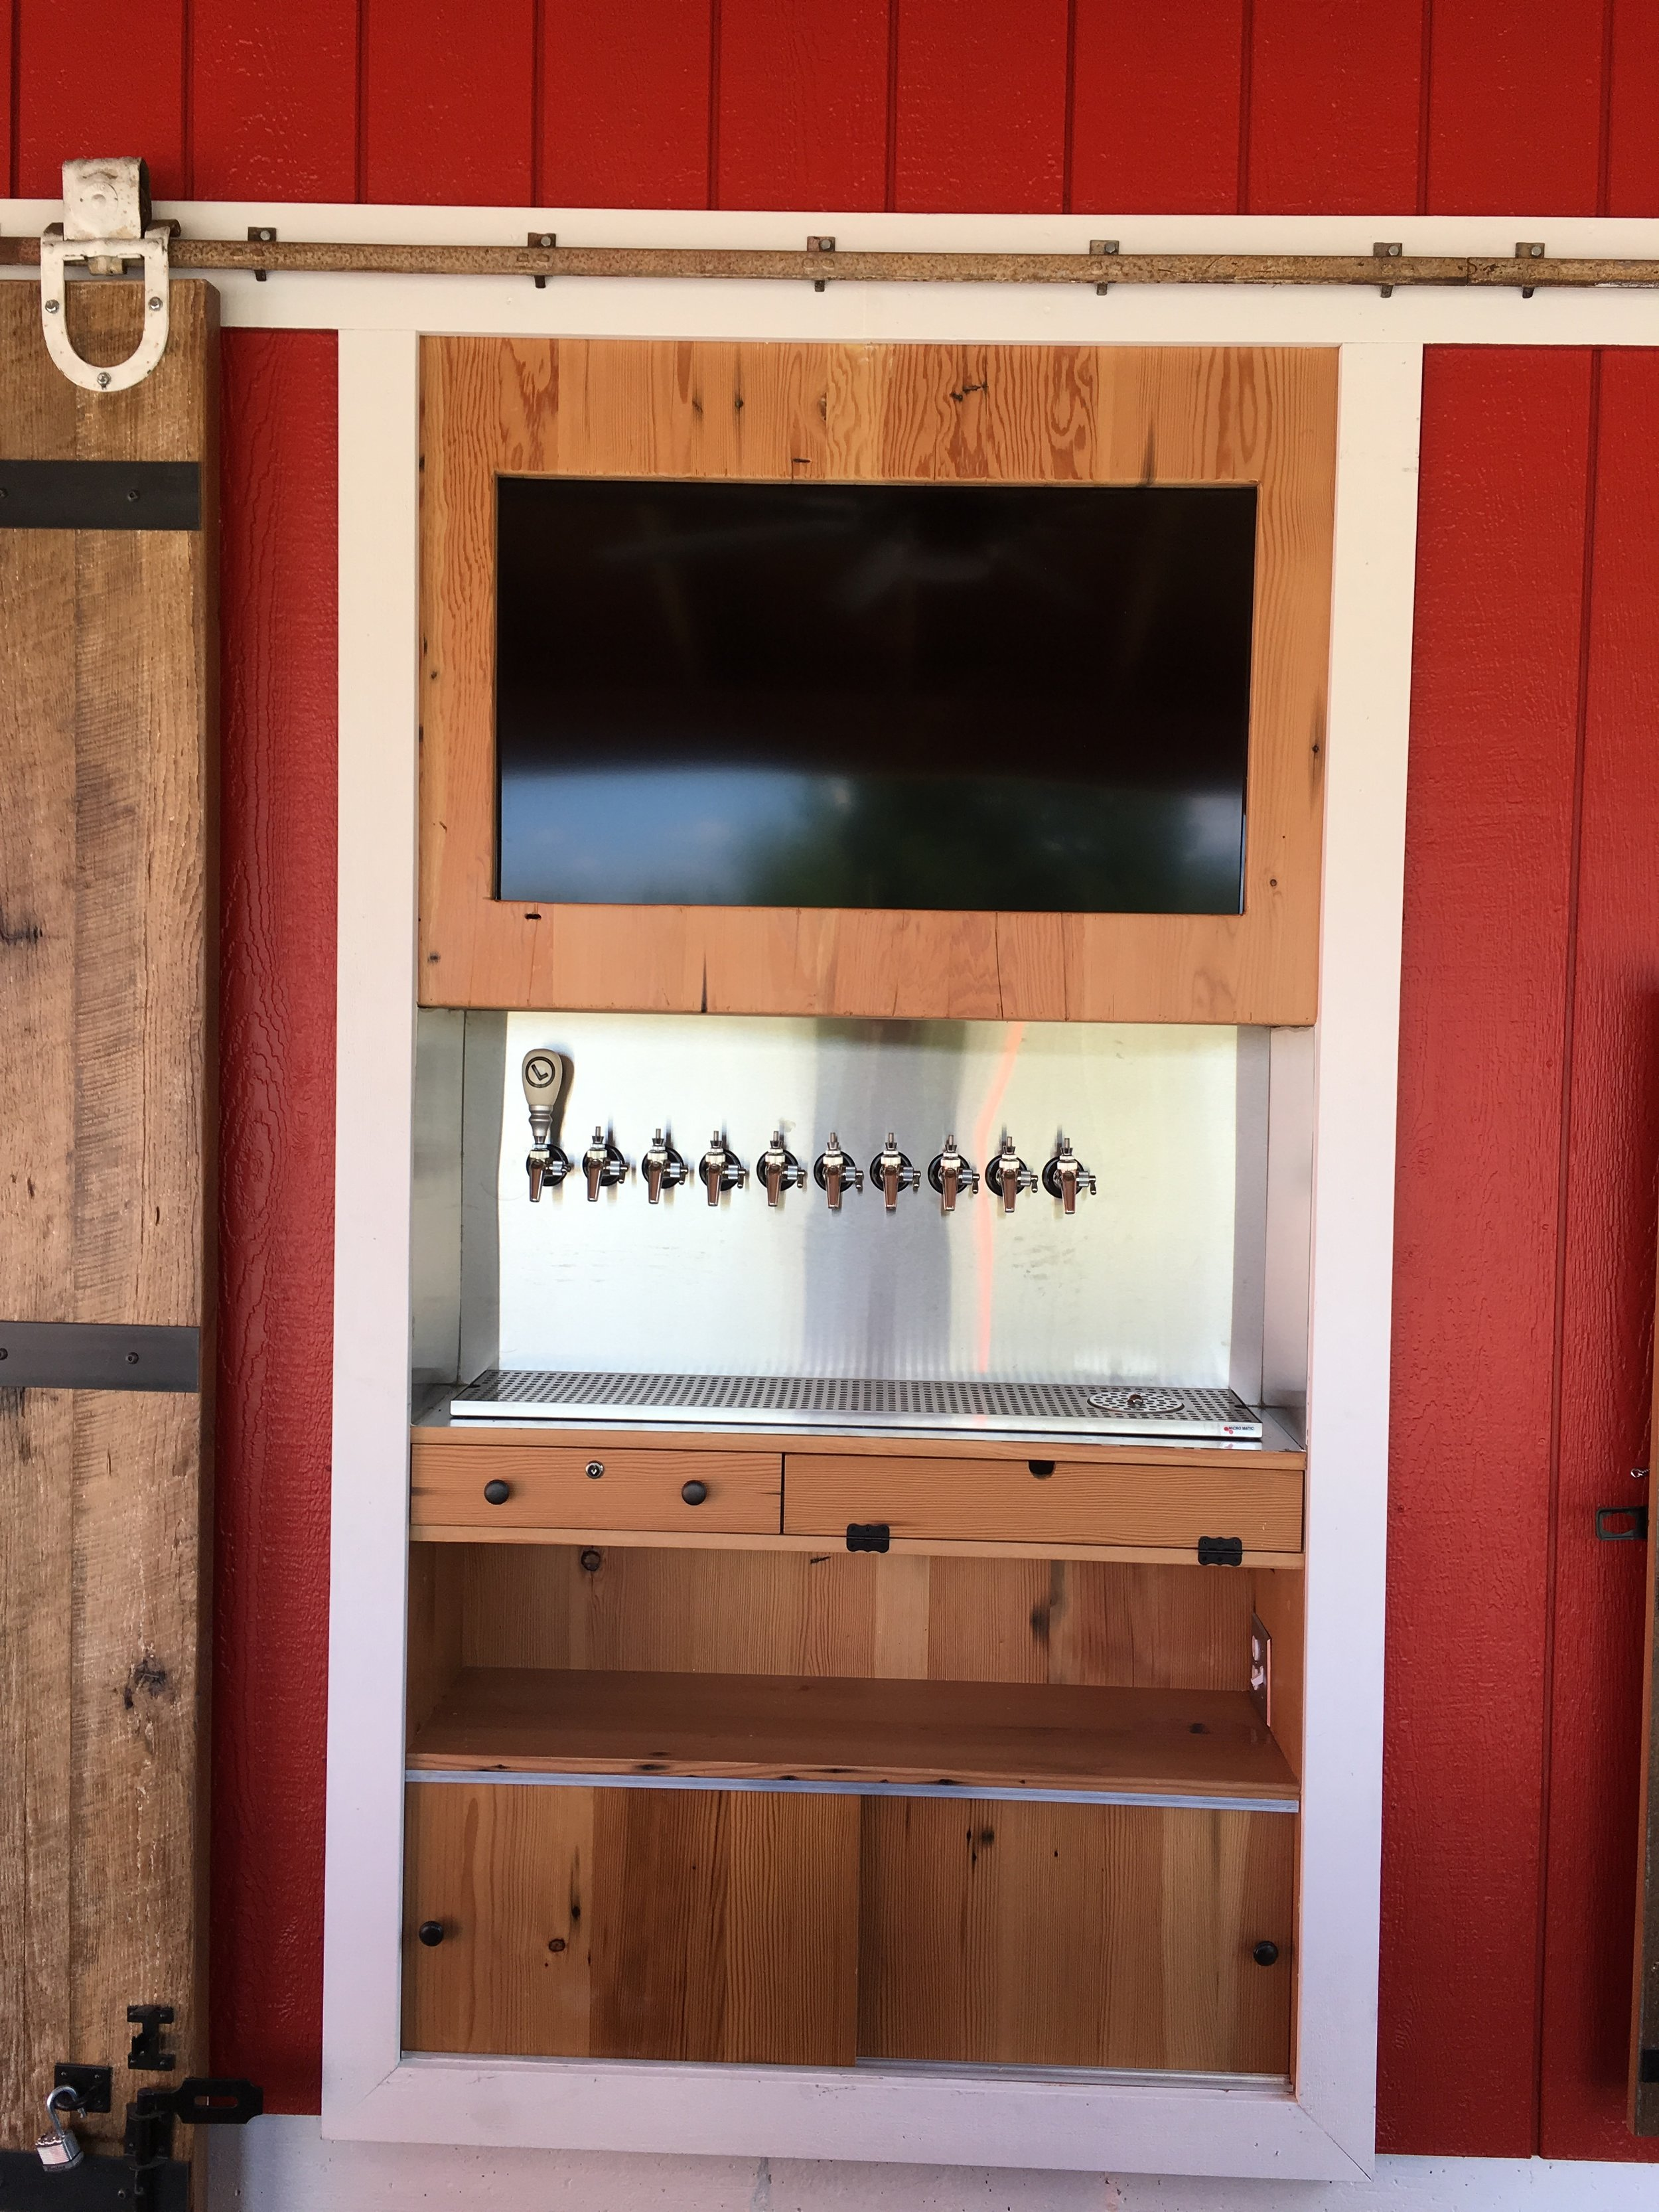 Tv, taps, and shelves on back bar